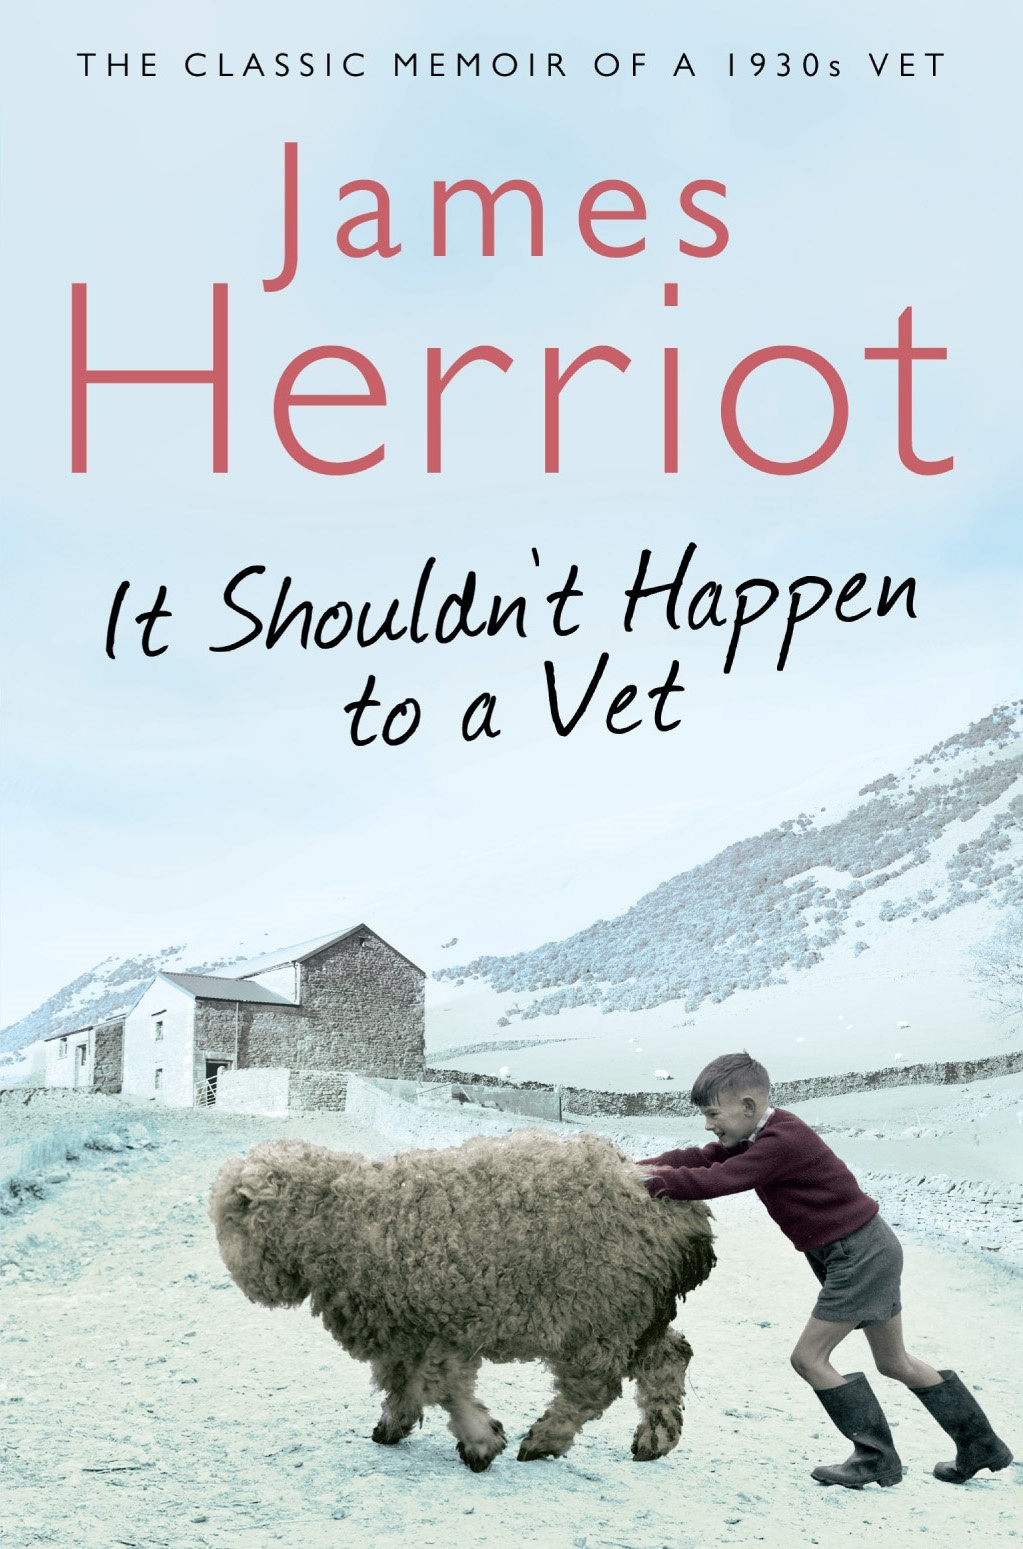 James Herriot Front cover of his book